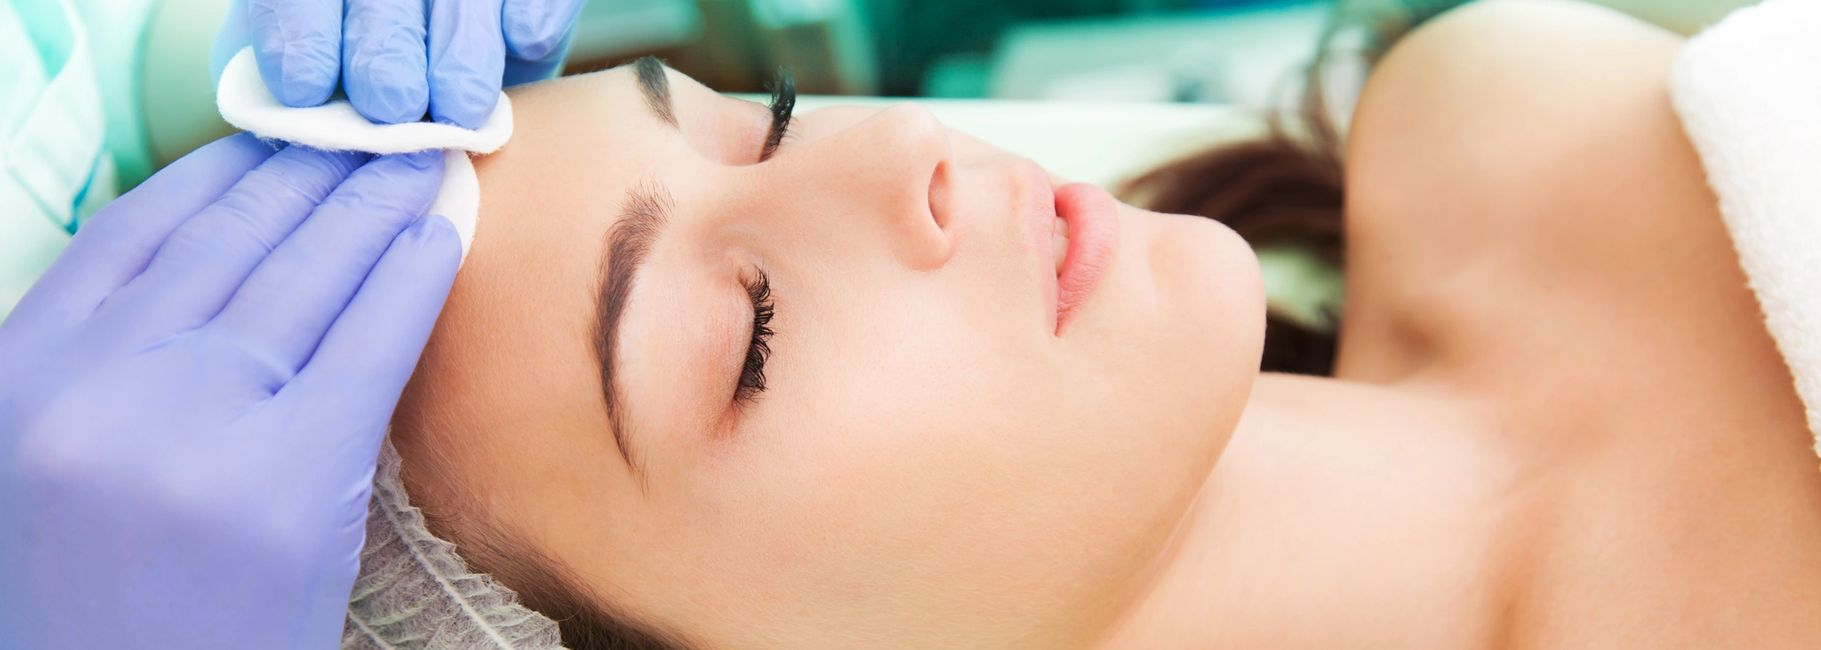 Precision peel facial little rock, antiaging facial little rock, rejuvenating custom facial near me